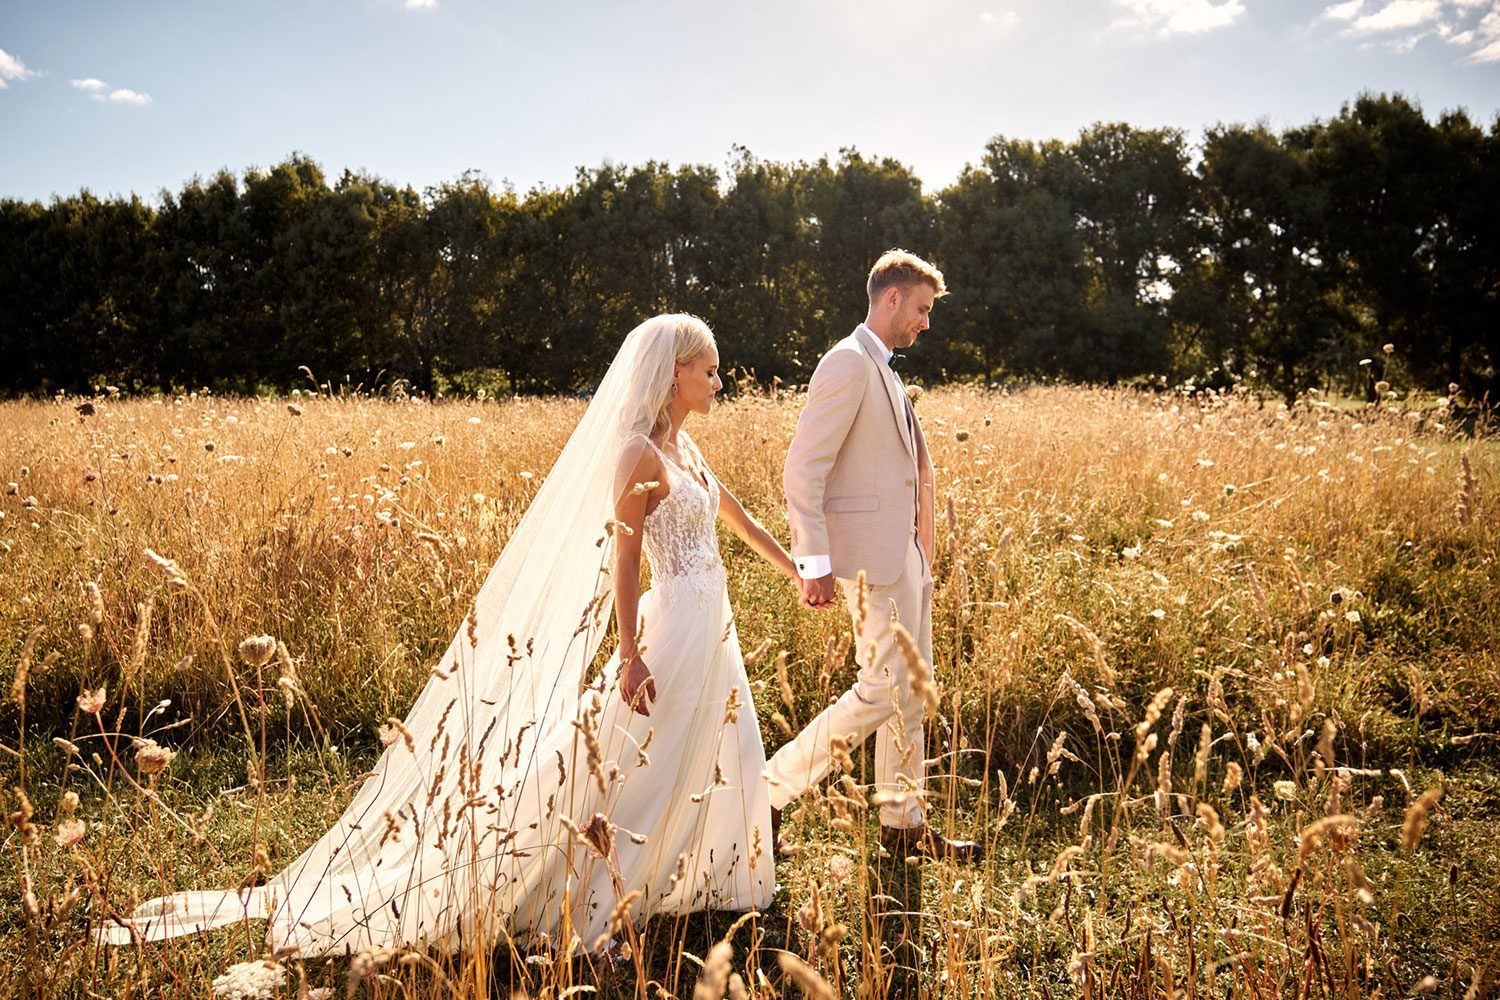 Bride wearing bespoke gown made of silk chiffon with delicate flower lace bodice by Vinka bridal designer Auckland - in profile with groom walking in field